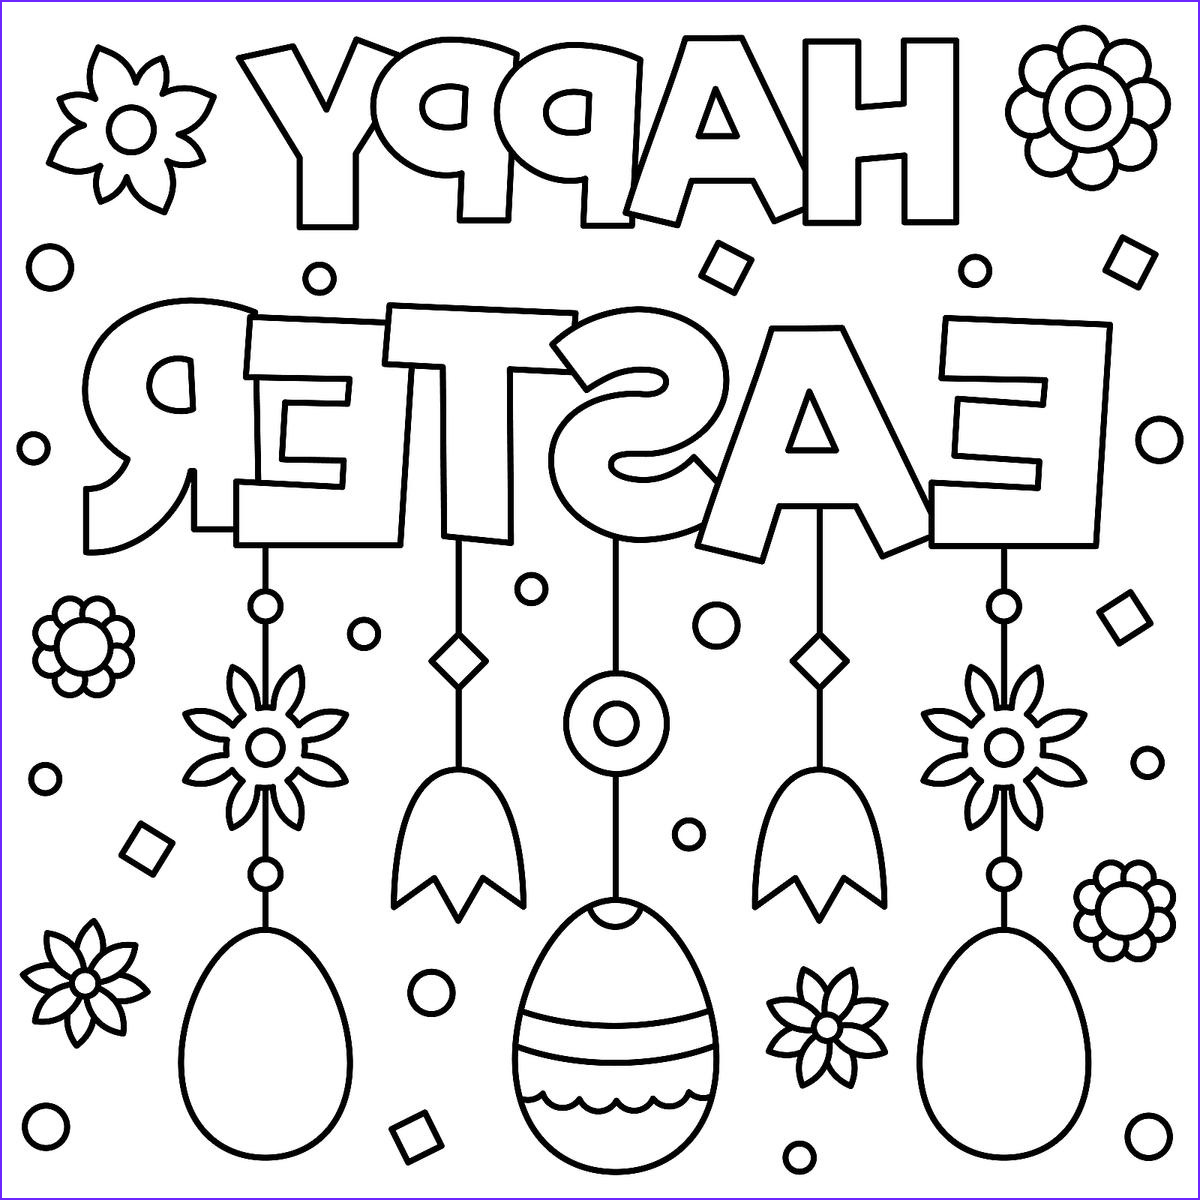 Coloring Pages for Easter Unique Gallery Easter Coloring Pages Fun Spring themed Printables for